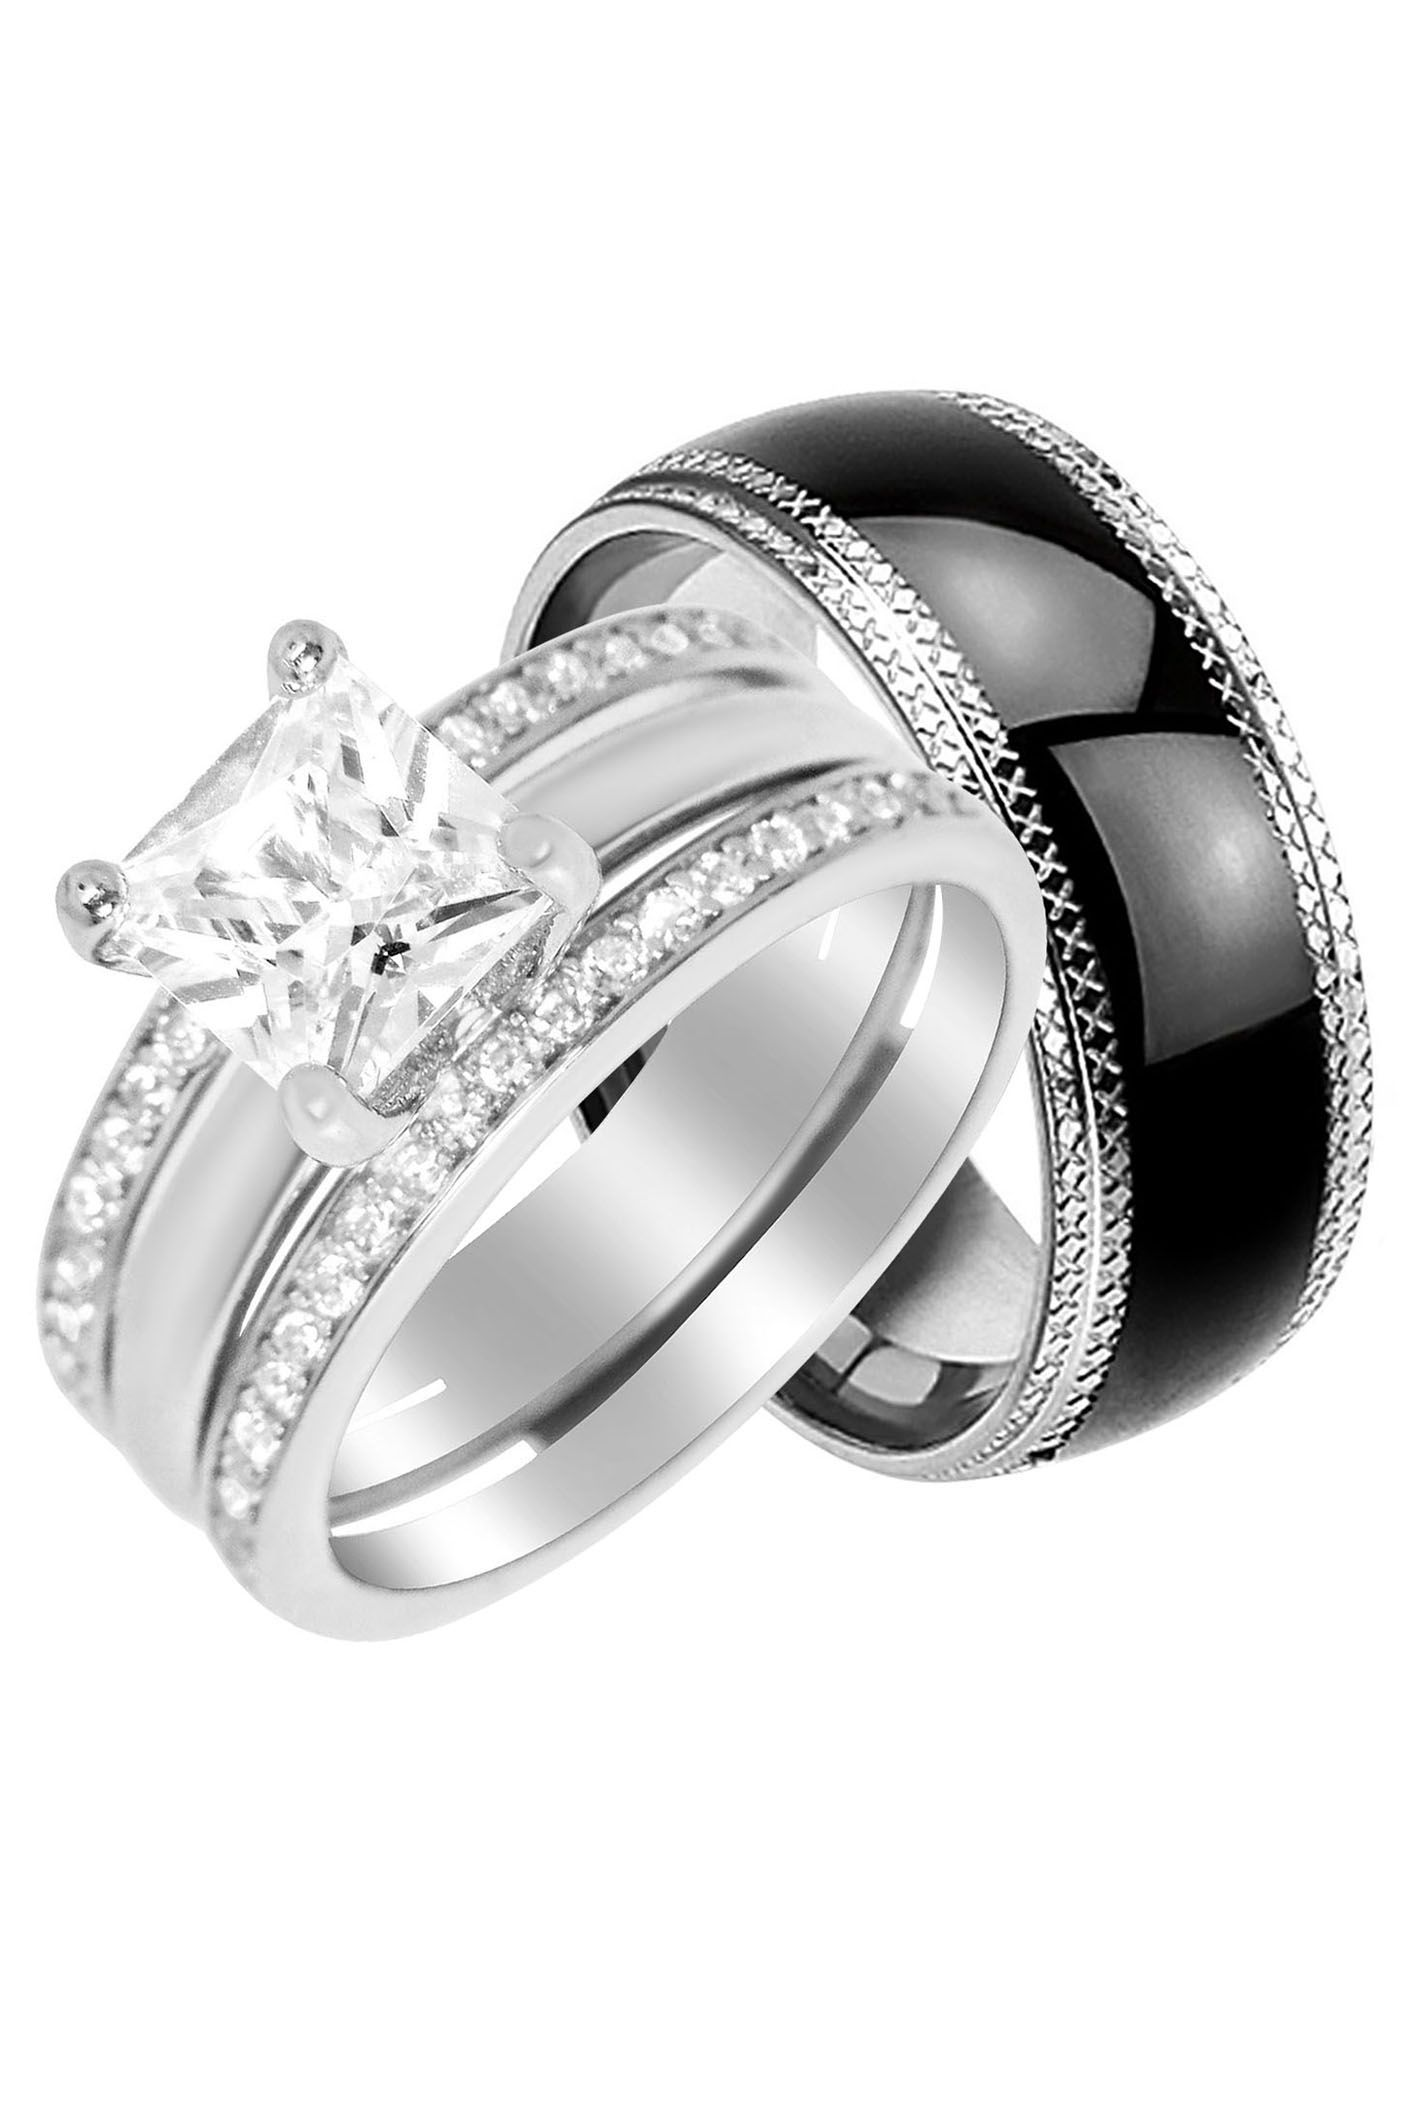 Laraso Co His Hers Silver Cz Bridal Wedding Ring Band Hers 6 His 9 Walmart Com In 2021 Wedding Rings Couple Wedding Rings Wedding Rings Sets His And Hers